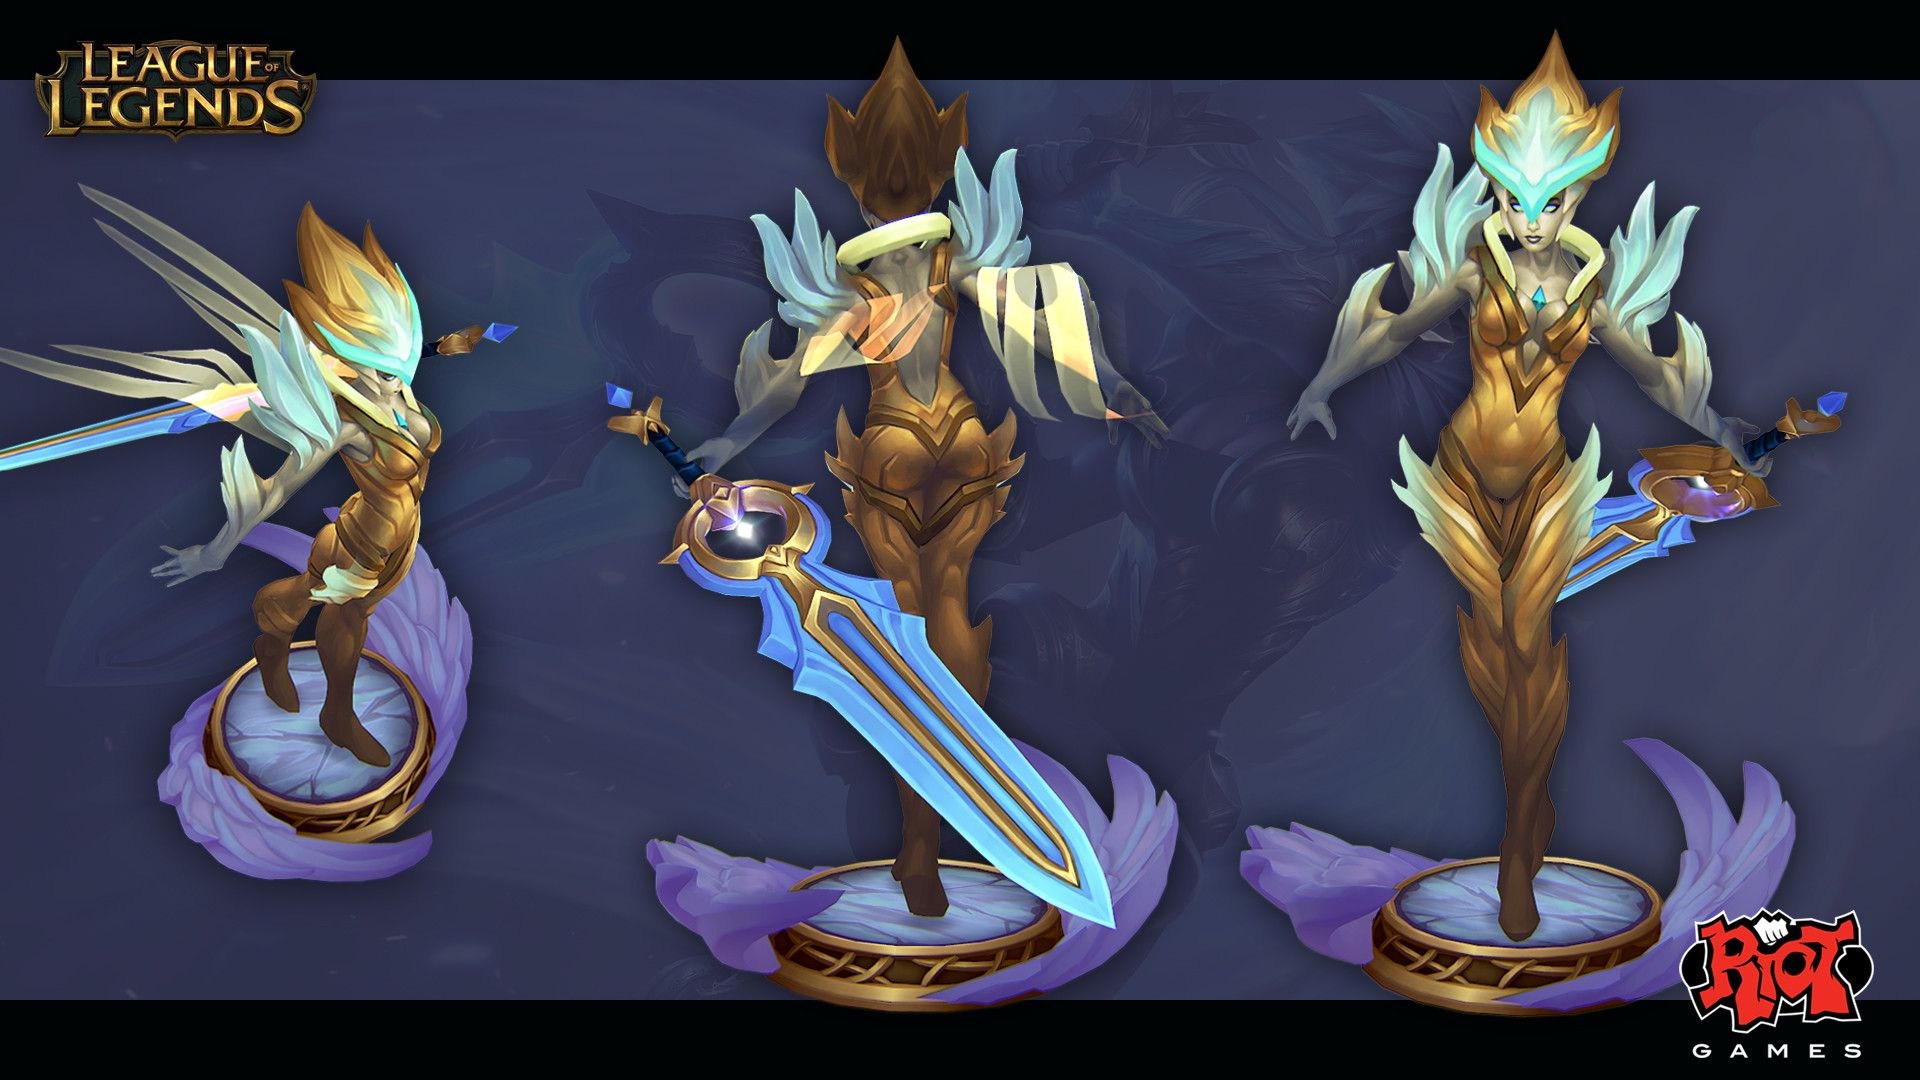 This Is Riven S Dawnbringer Skin For League Of Legends It Was A